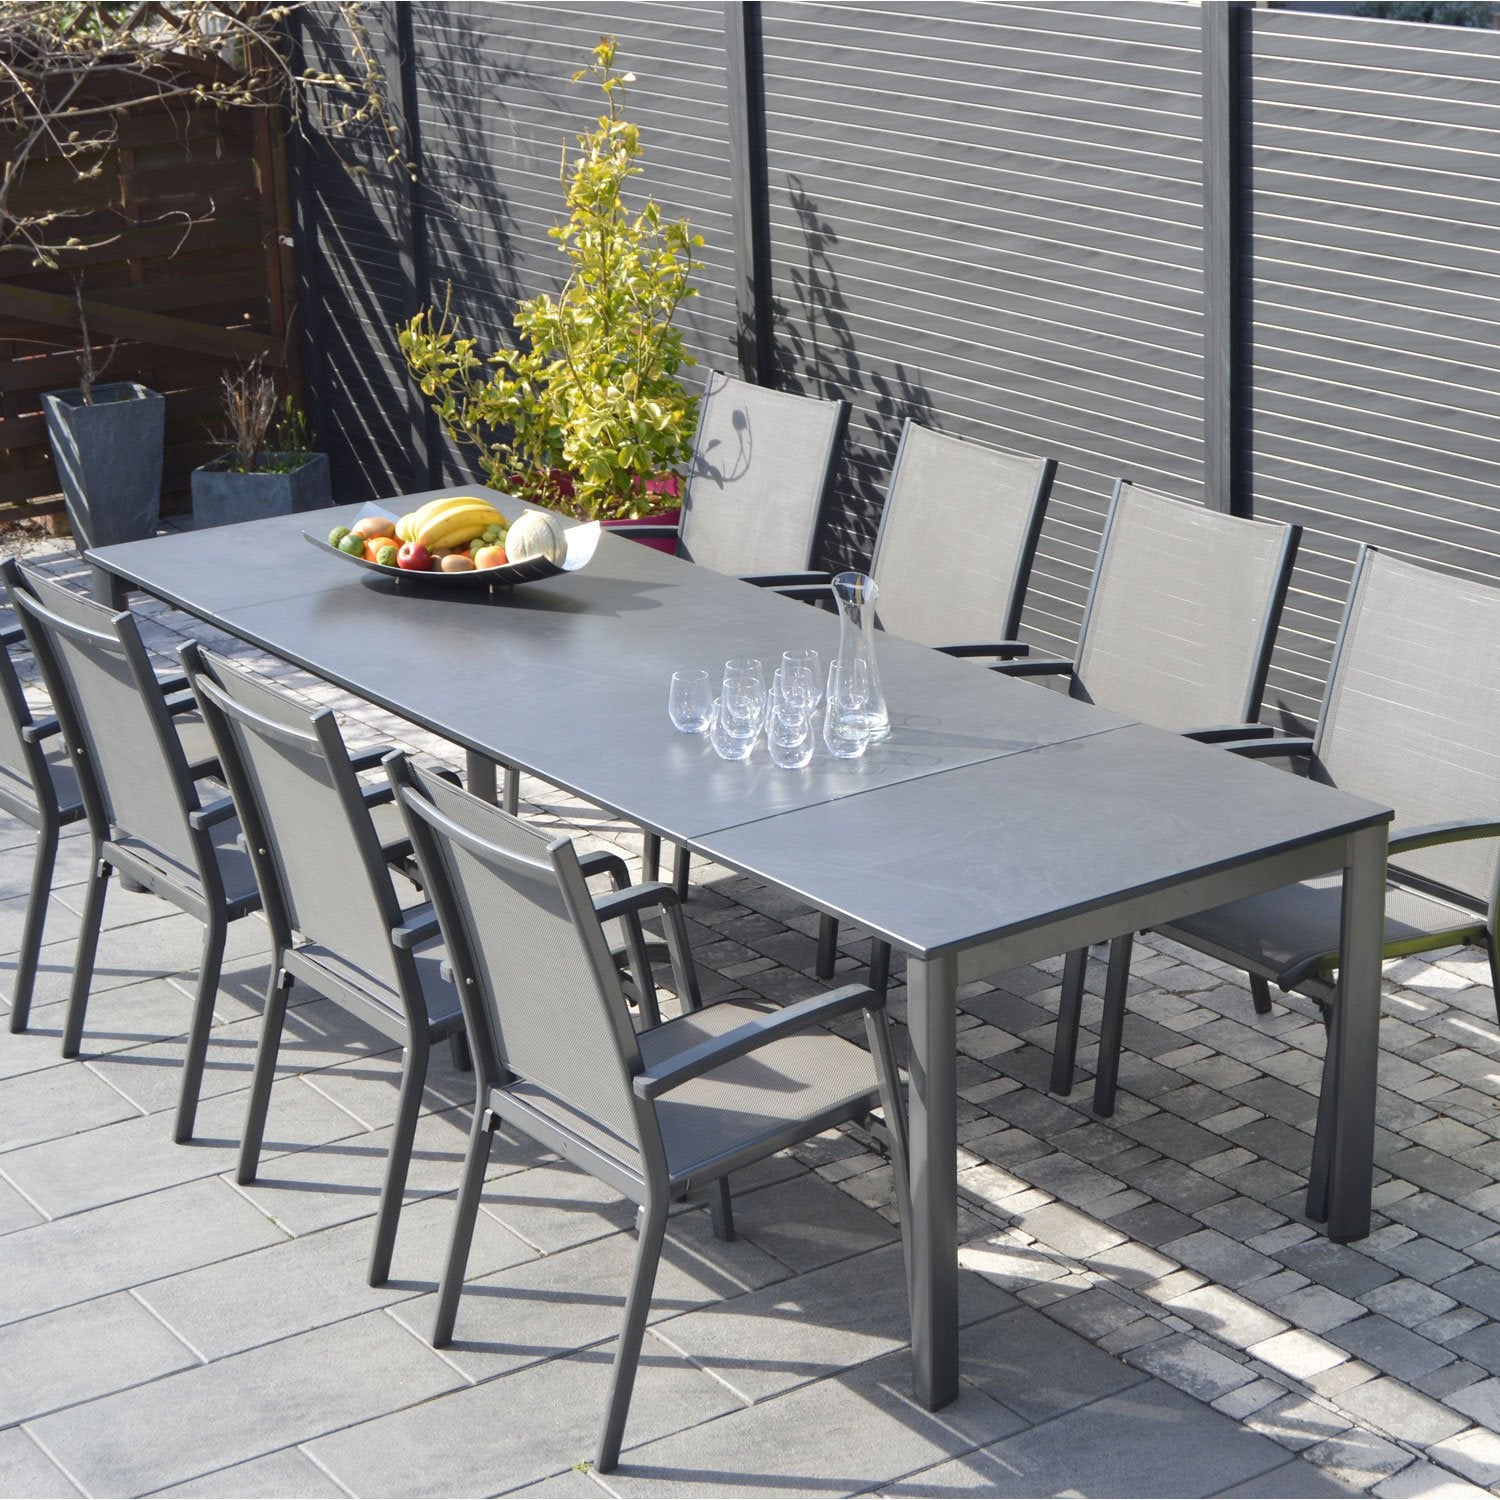 Salon de jardin puroplan aluminium gris anthracite 10 for Salon jardin resine gris anthracite